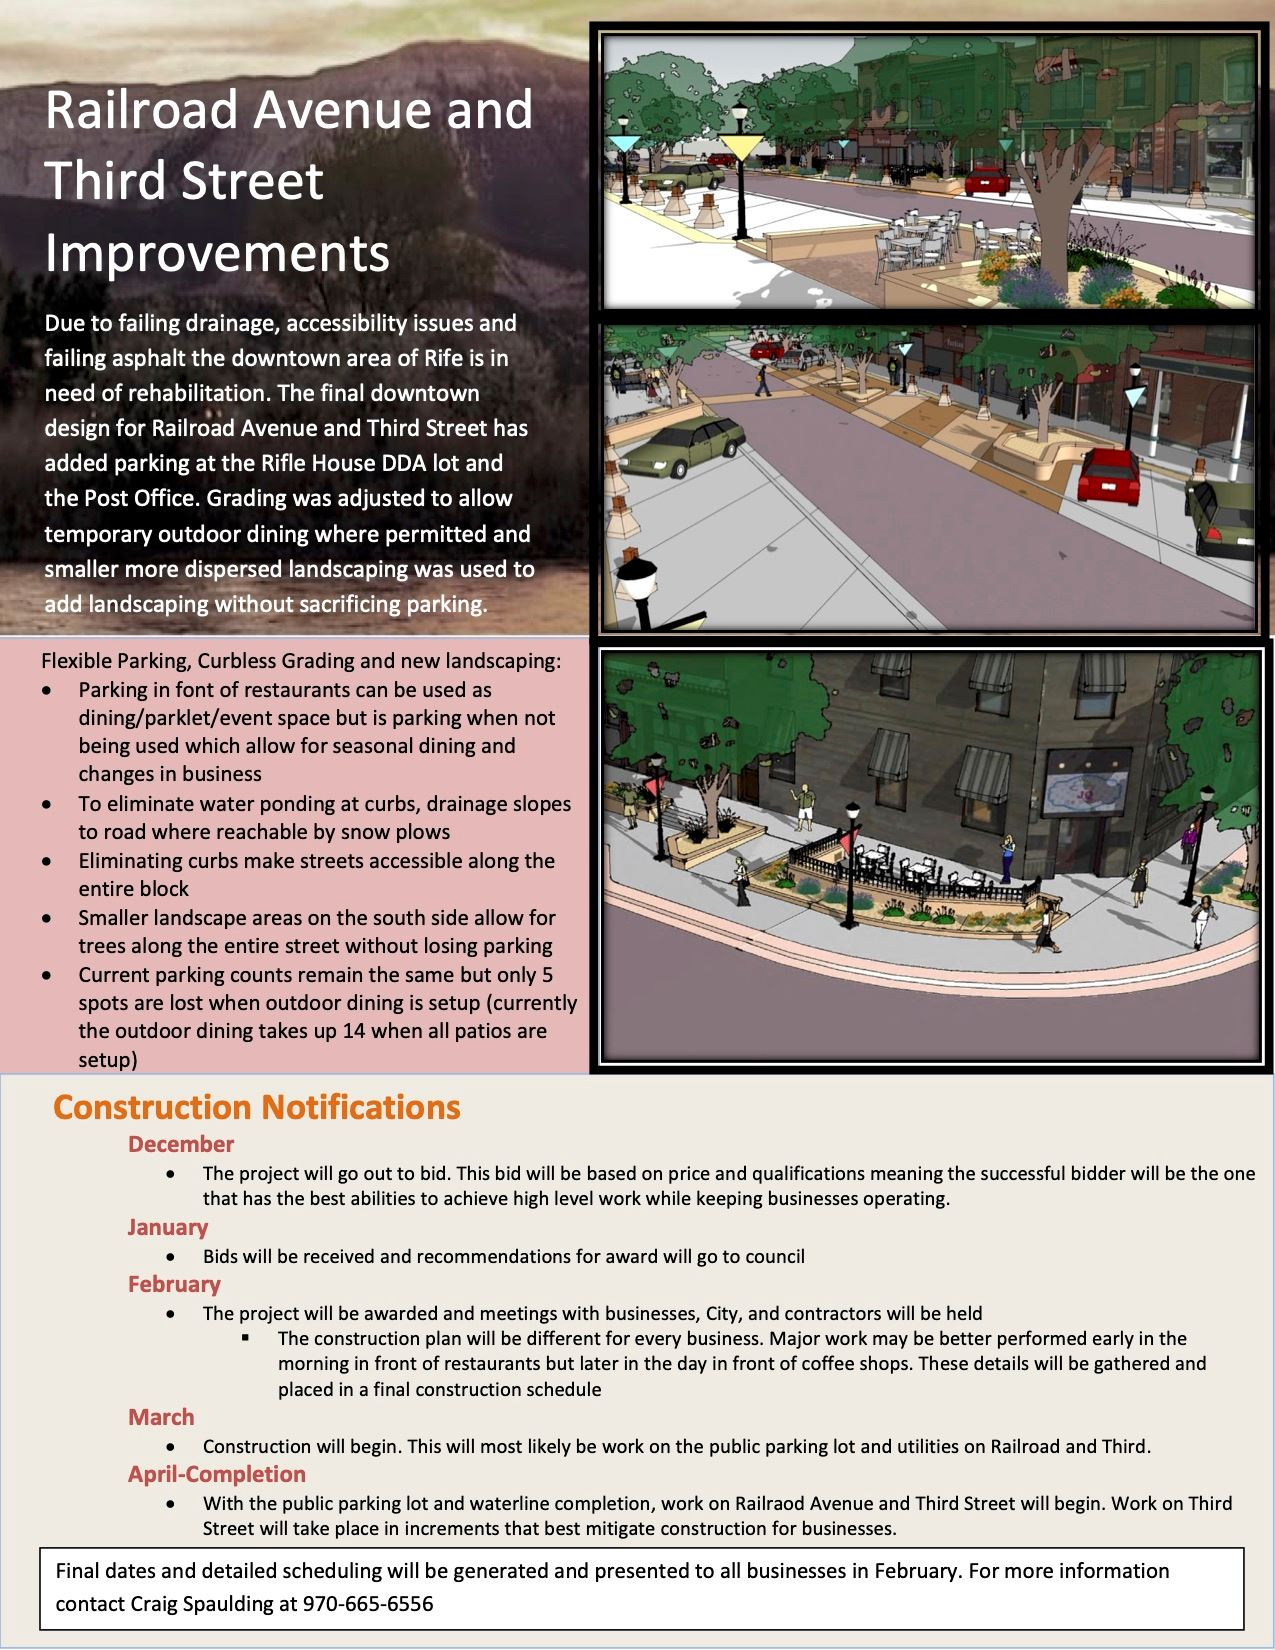 Railroad Ave and Third Street - Final Design Flyer jpg Opens in new window